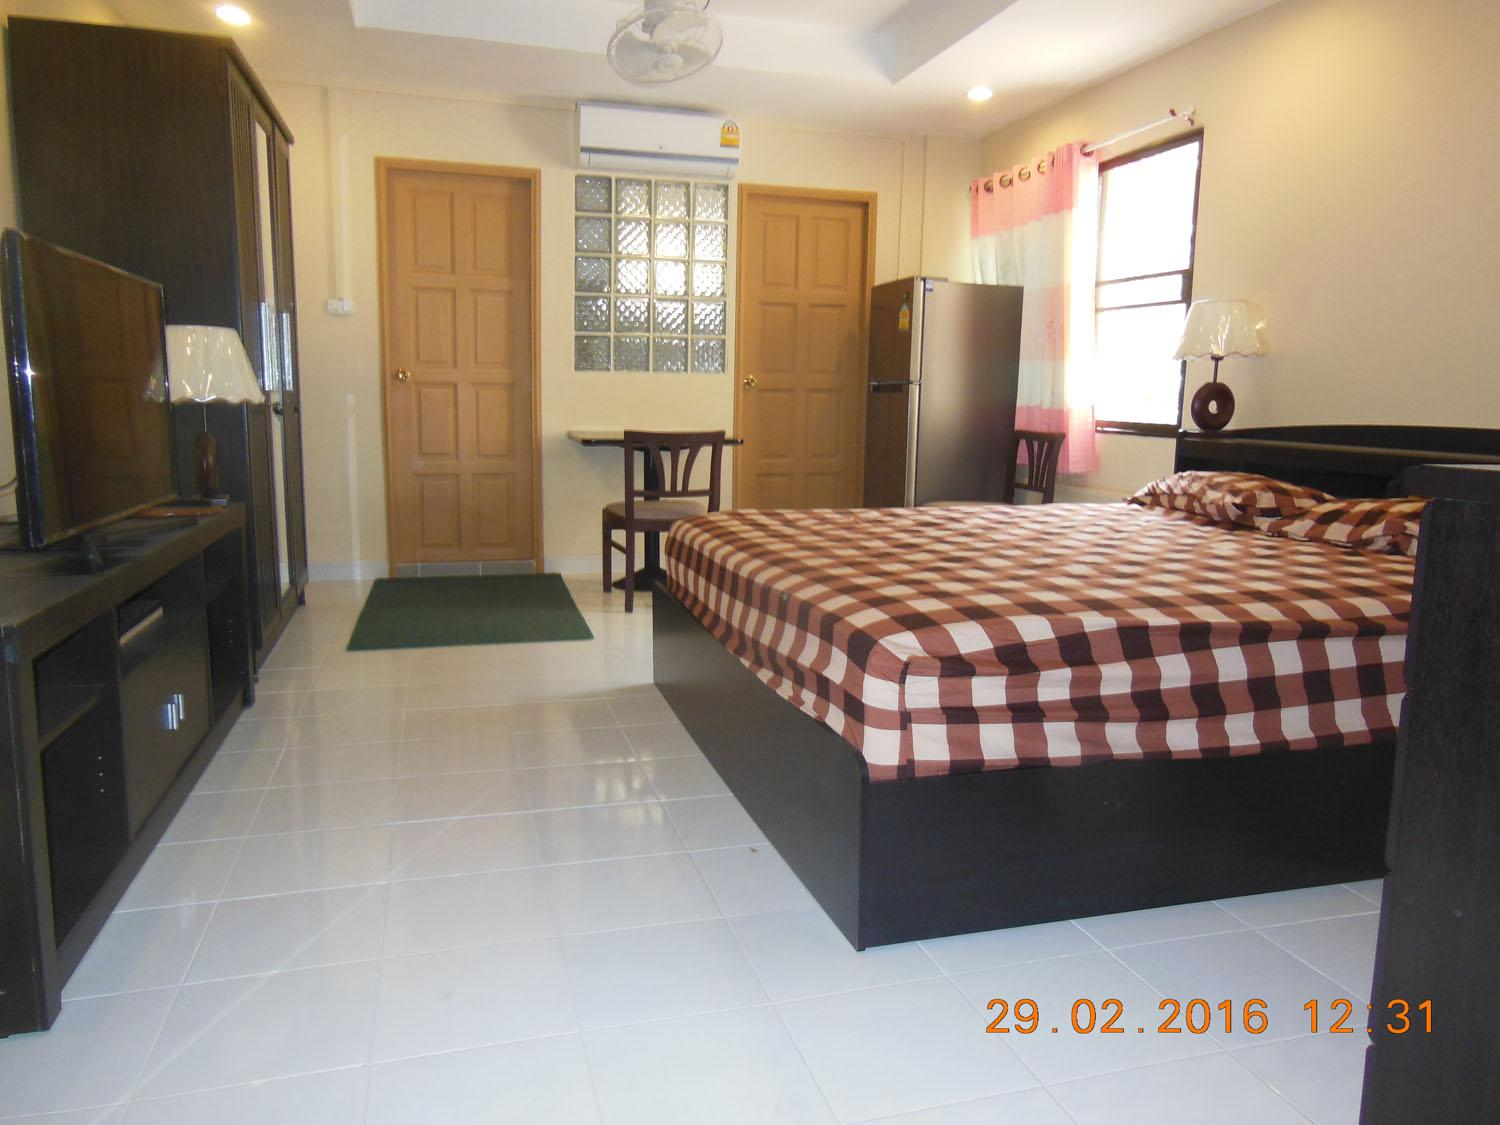 "8,000 BHT/M Pattaya Condo For Rent W/Pool 40"" TV"